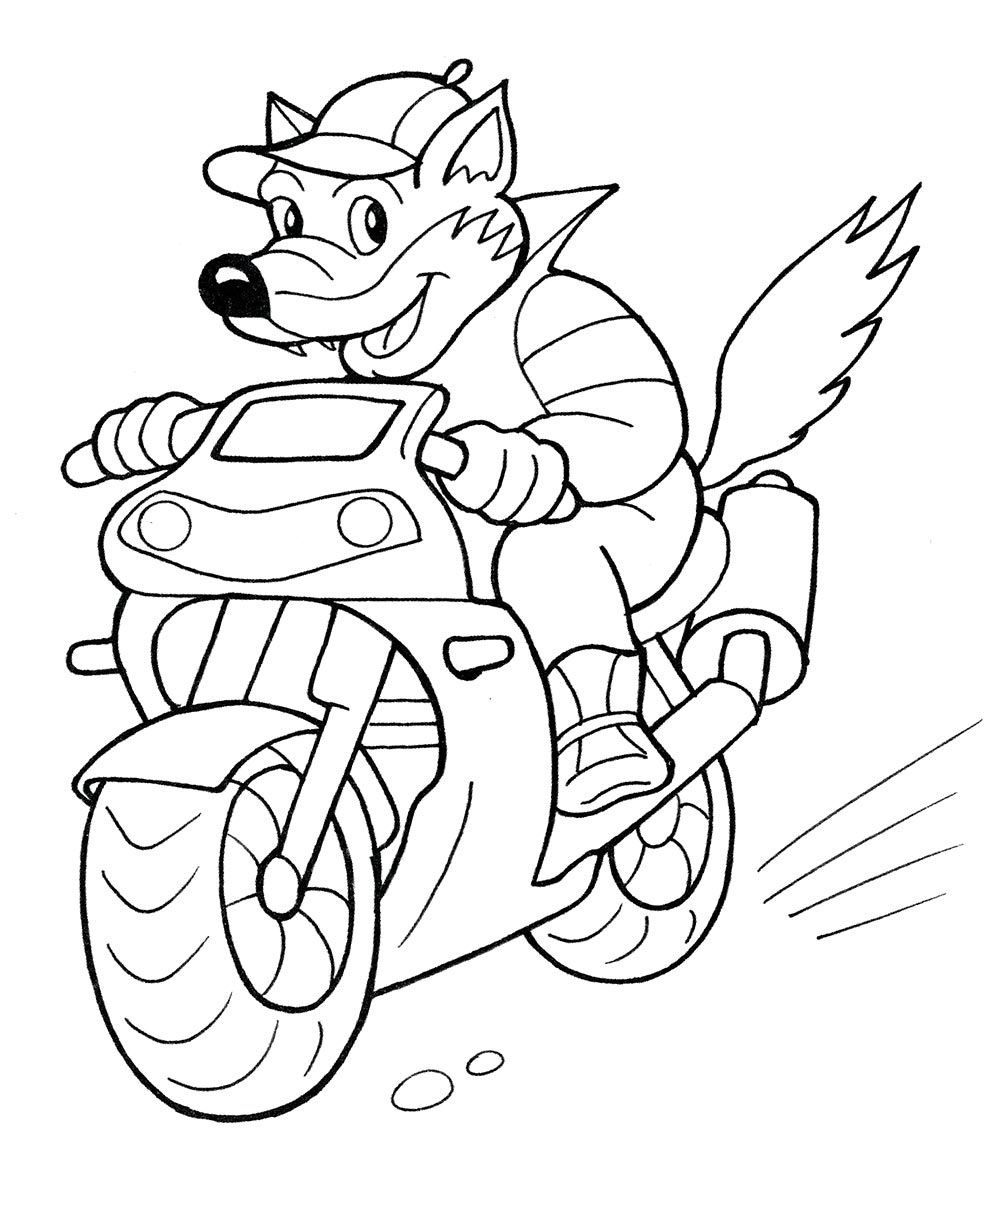 Coloring pages for children 7-8 years to download and ...